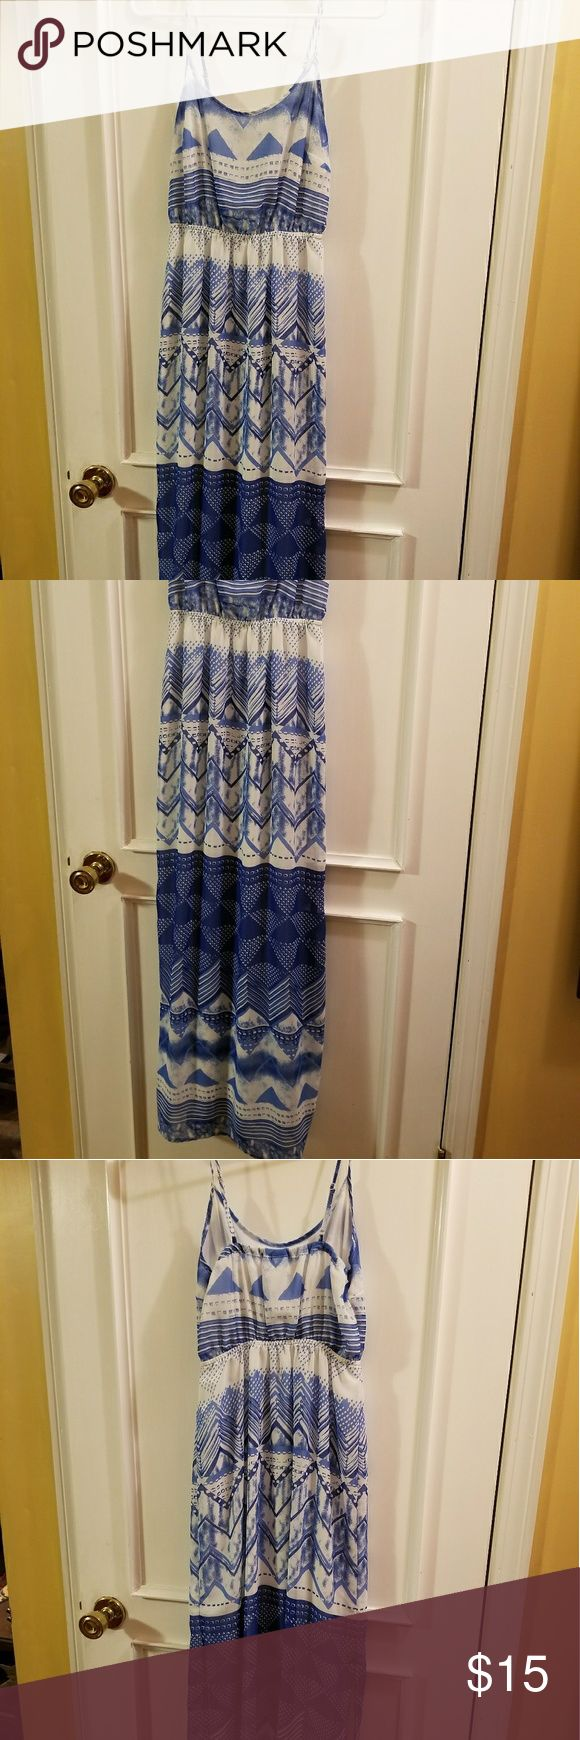 Blue and white maxi dress Very flattering floor length maxi dress in blue and white😍, worn twice with no flaws. Size xs but I usually wear small or medium and this fits me perfectly Old Navy Dresses Maxi